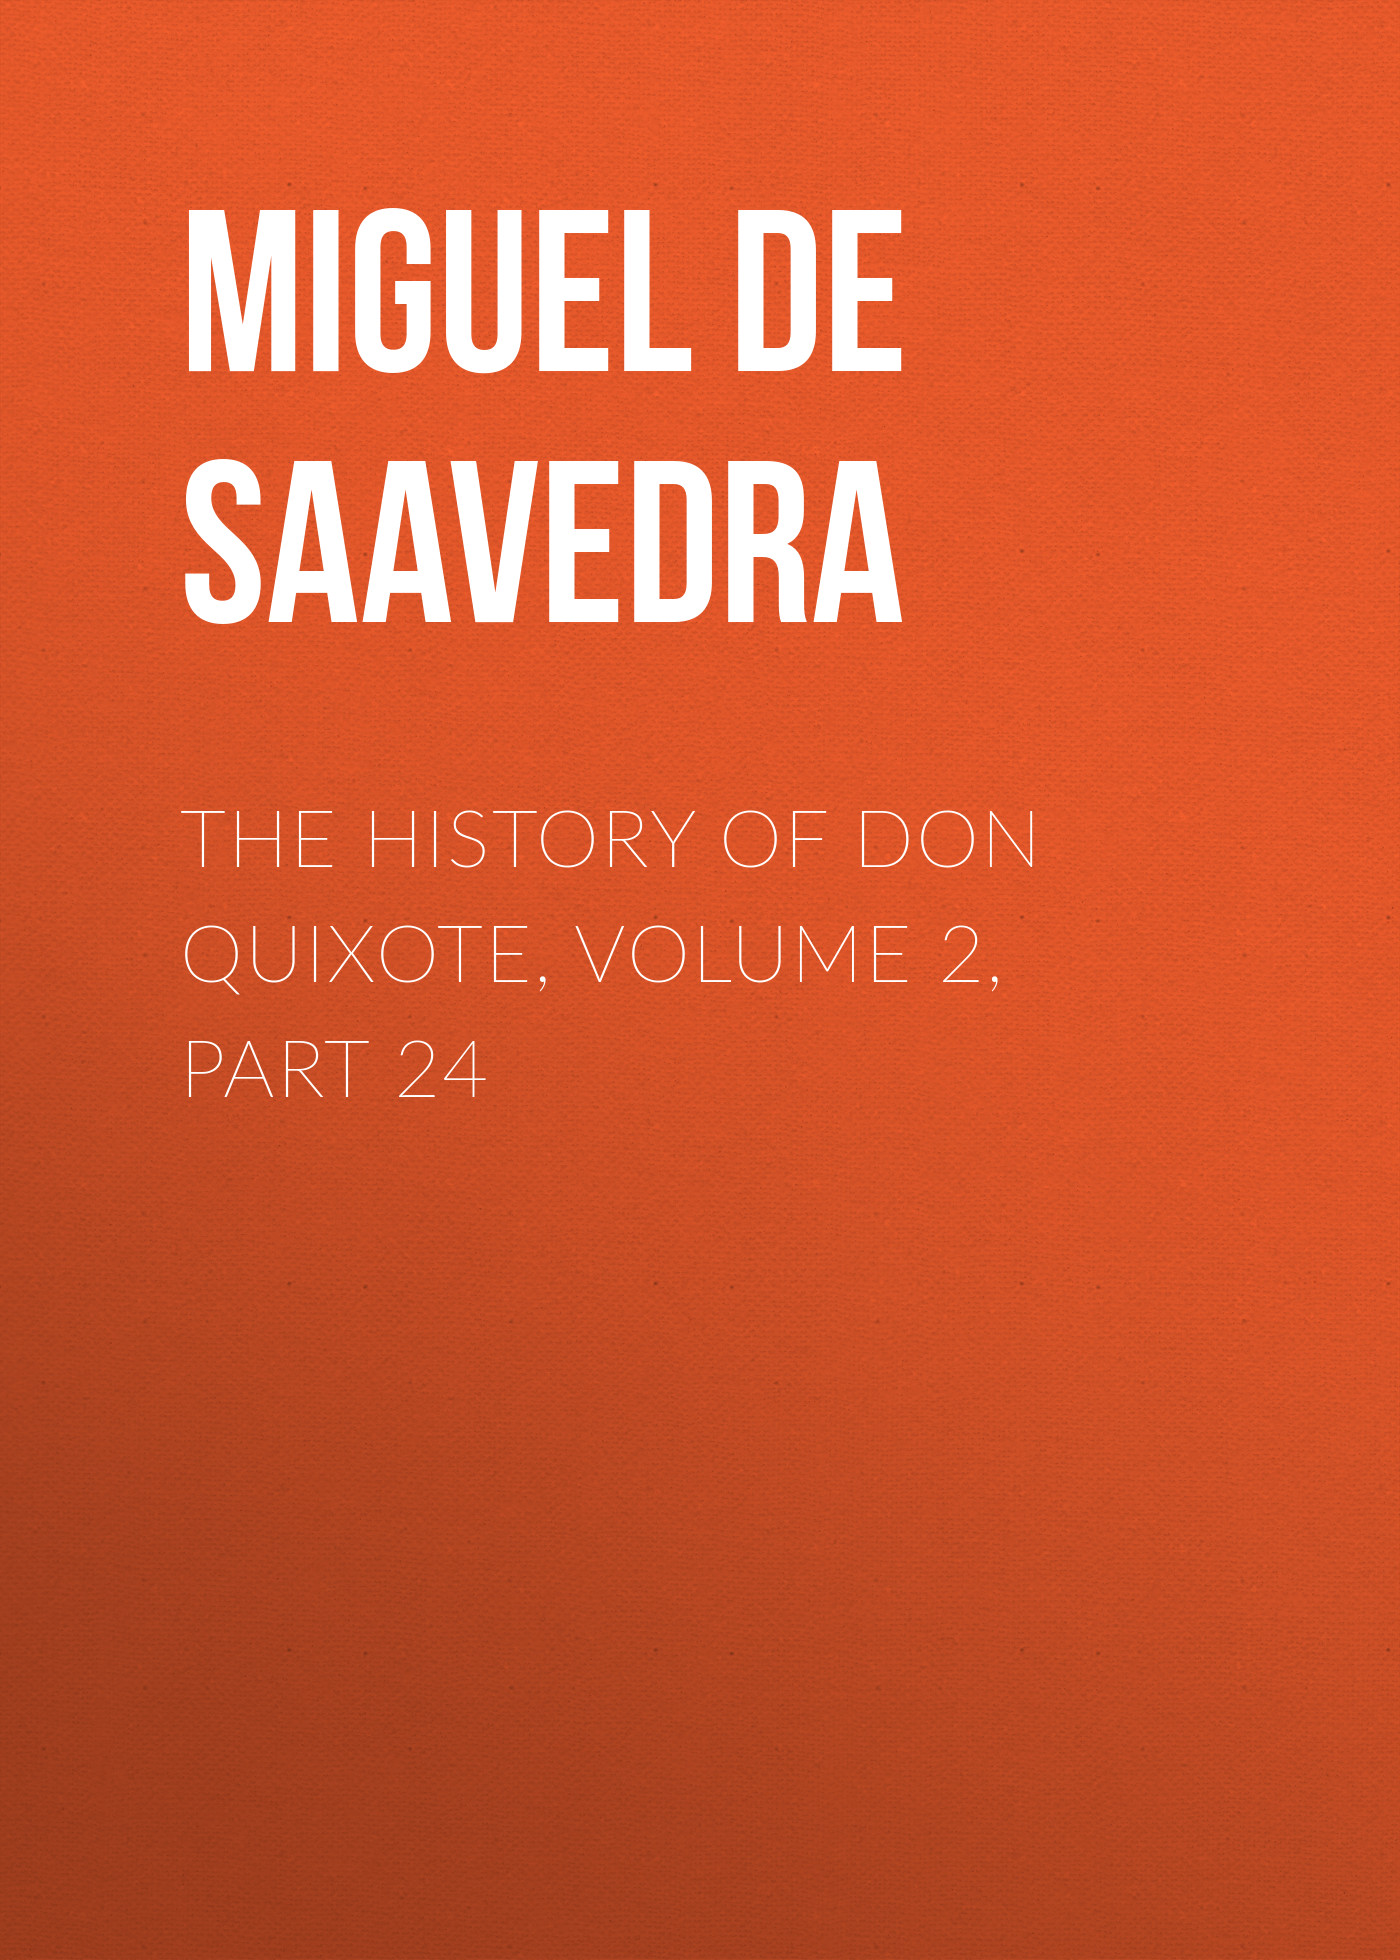 the history of don quixote volume 2 part 24